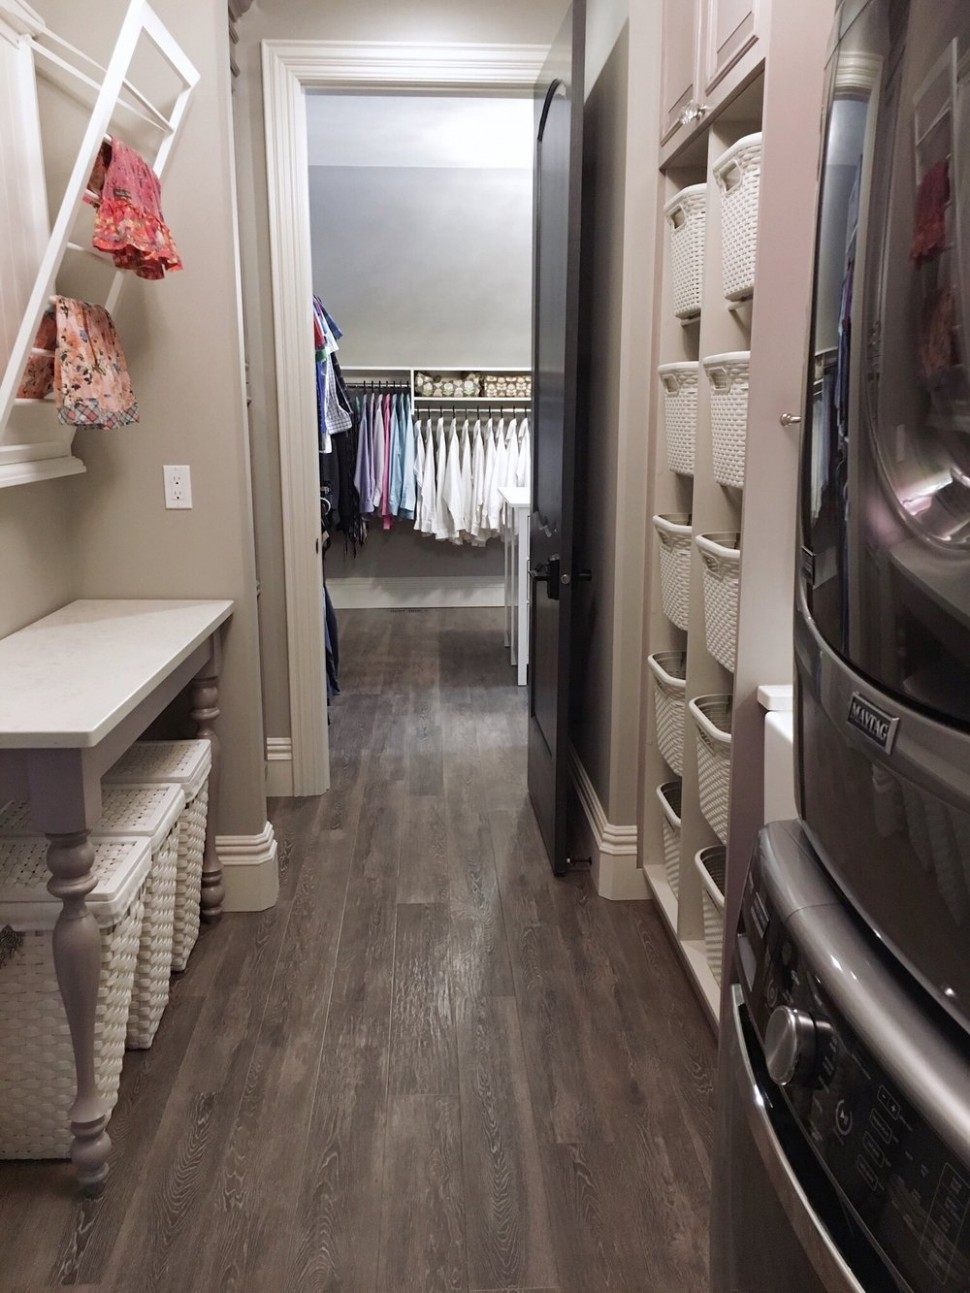 12 Laundry Room Ideas For Big Families (Building or Renovating  - Laundry Room Near Bedrooms